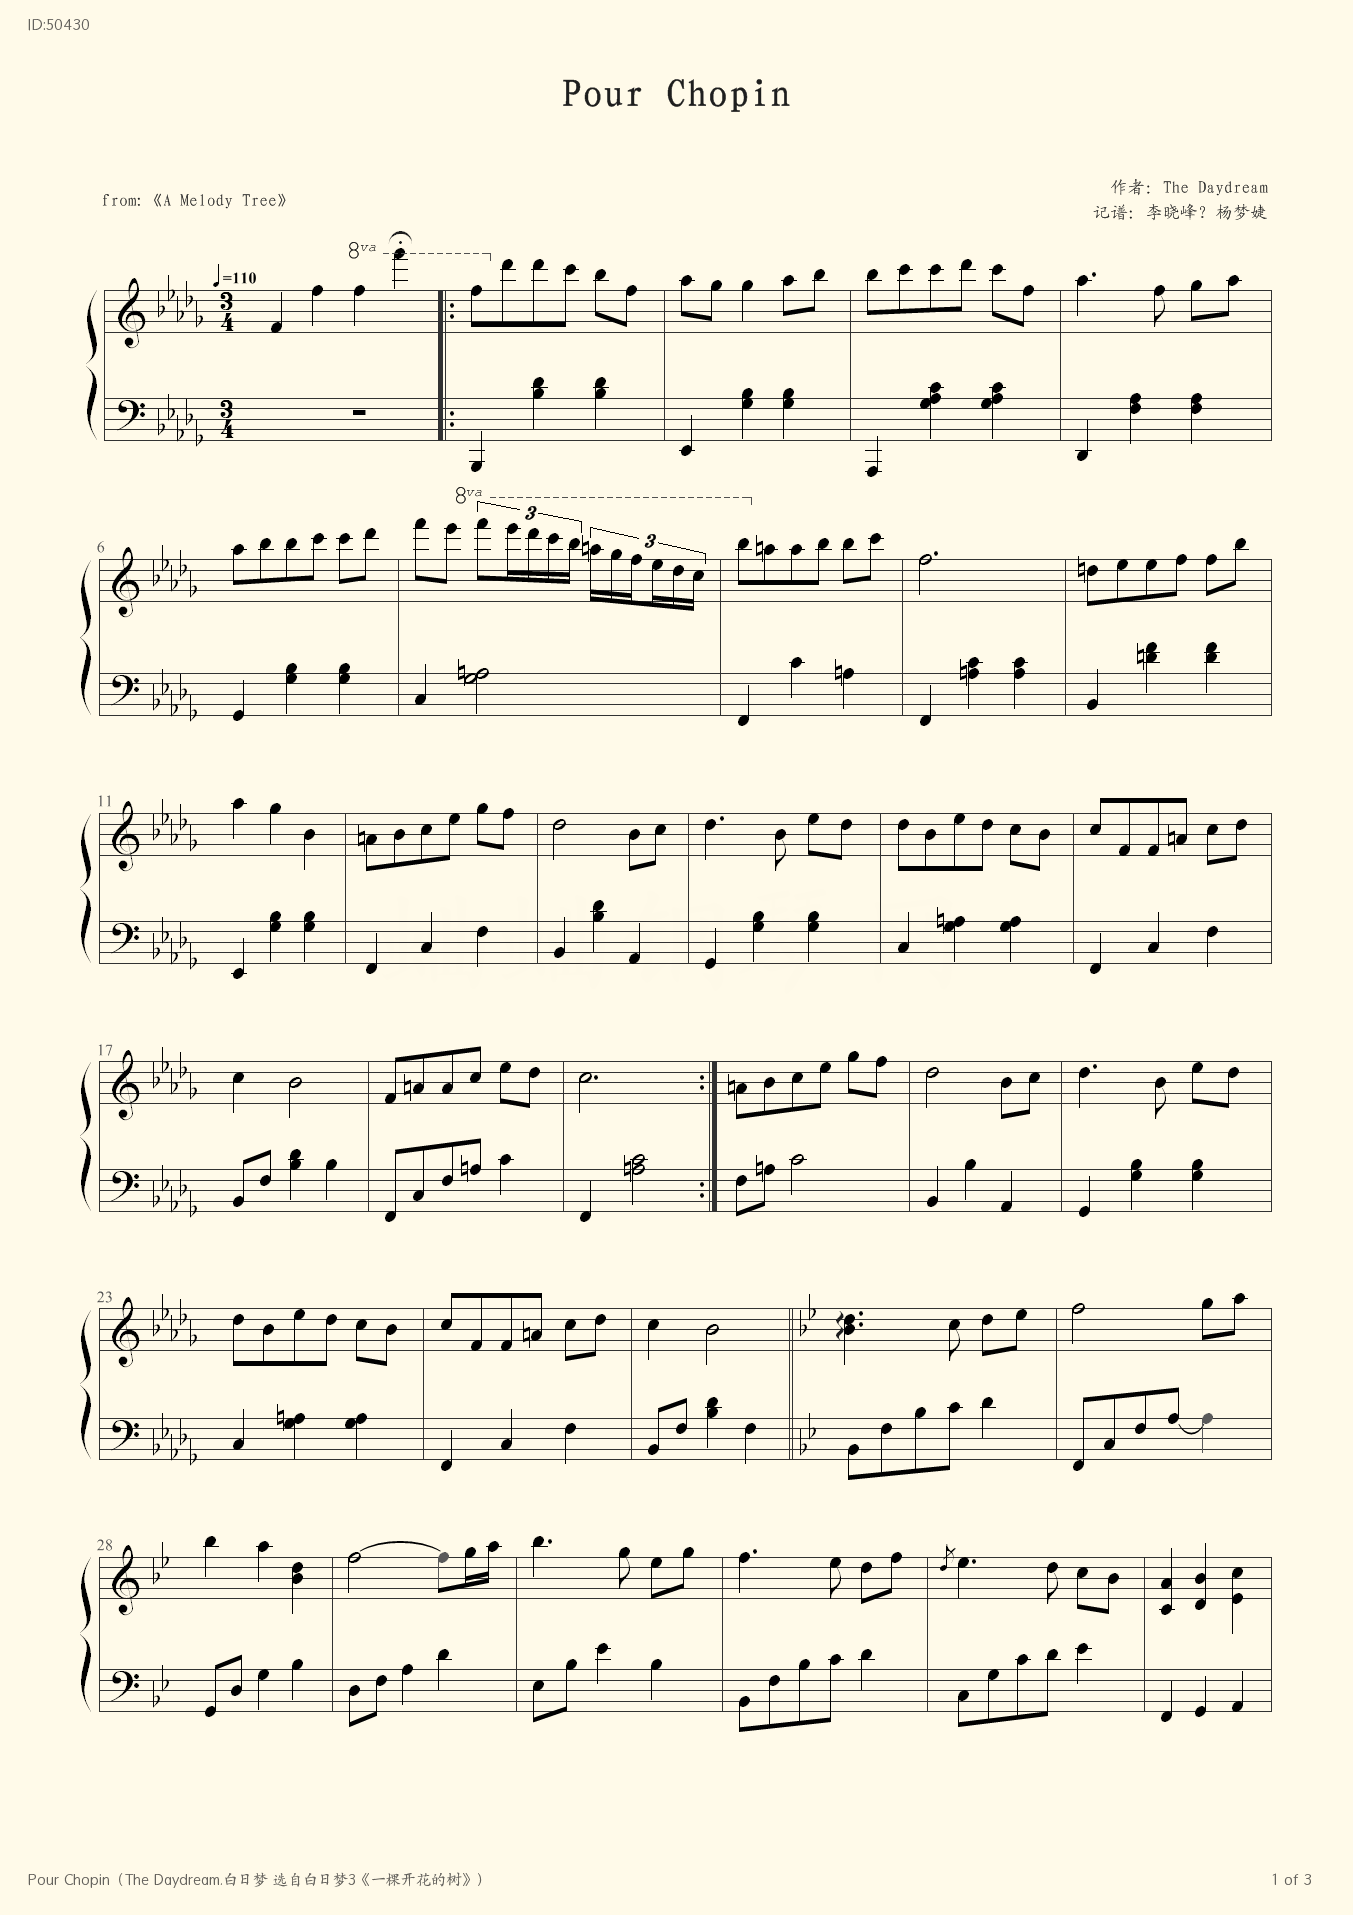 Pour Chopin The Daydream 3  - The Daydream  - first page